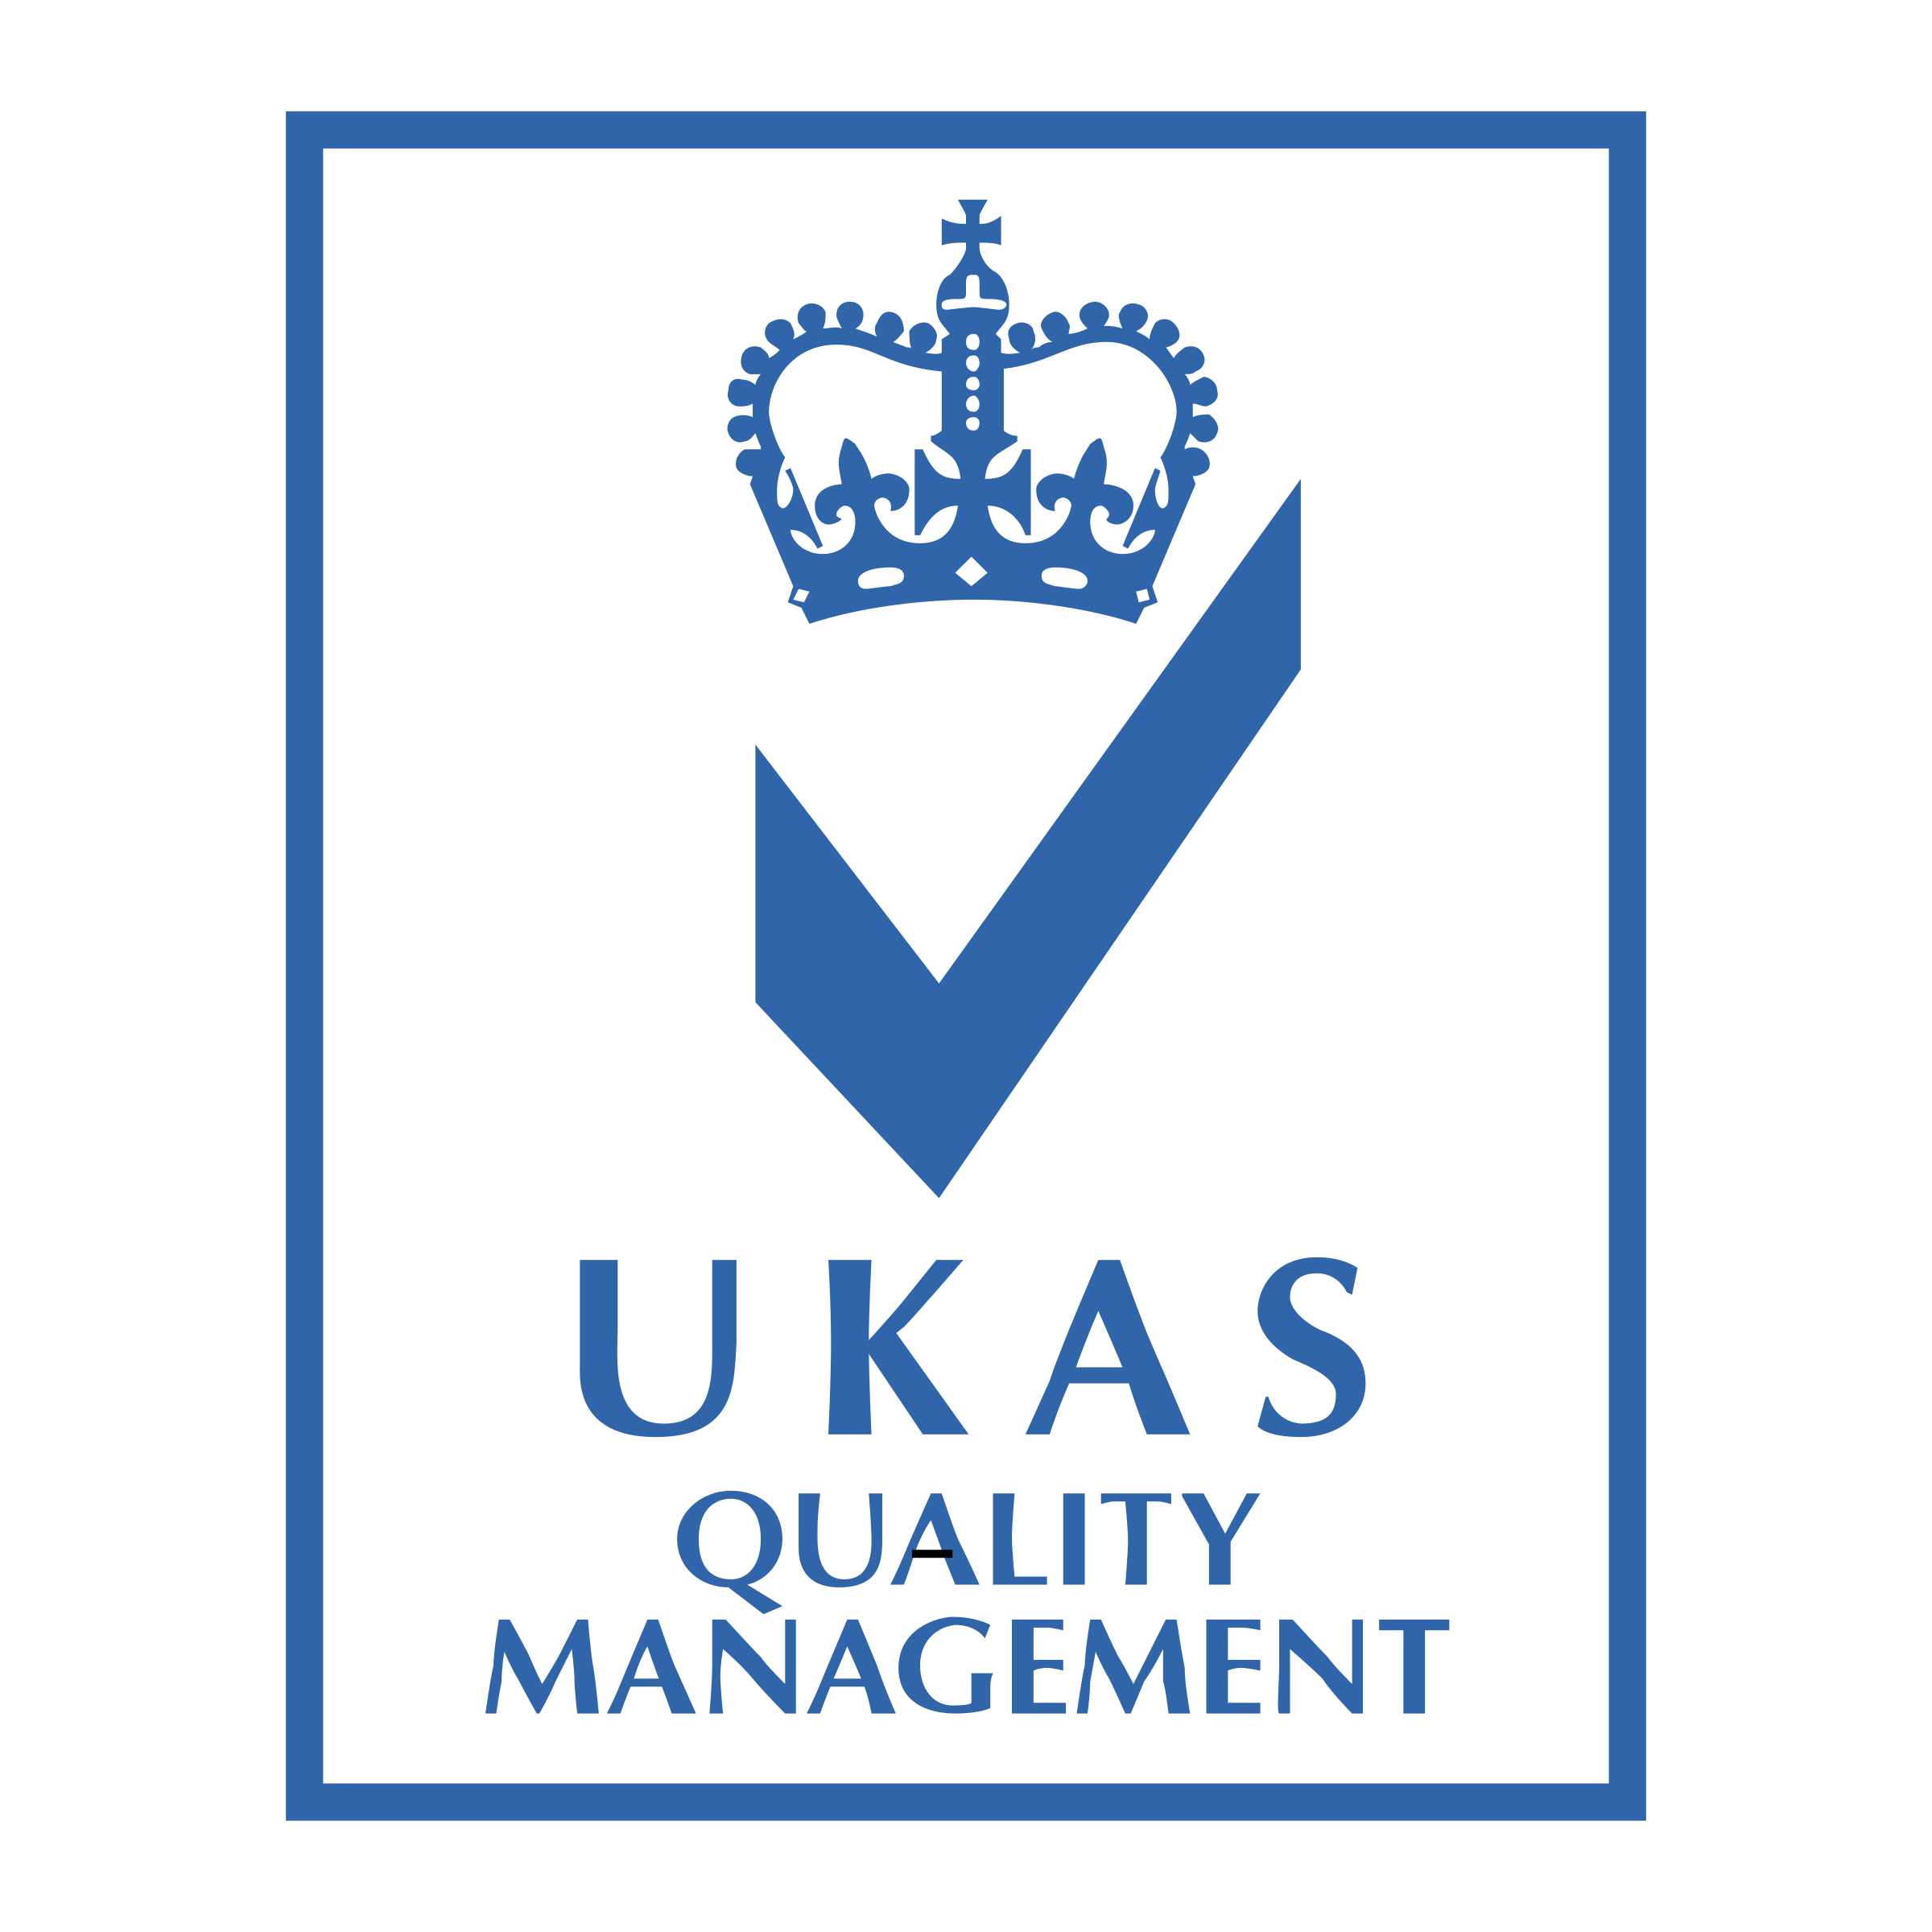 Vector quality. Ukas management logo png picture